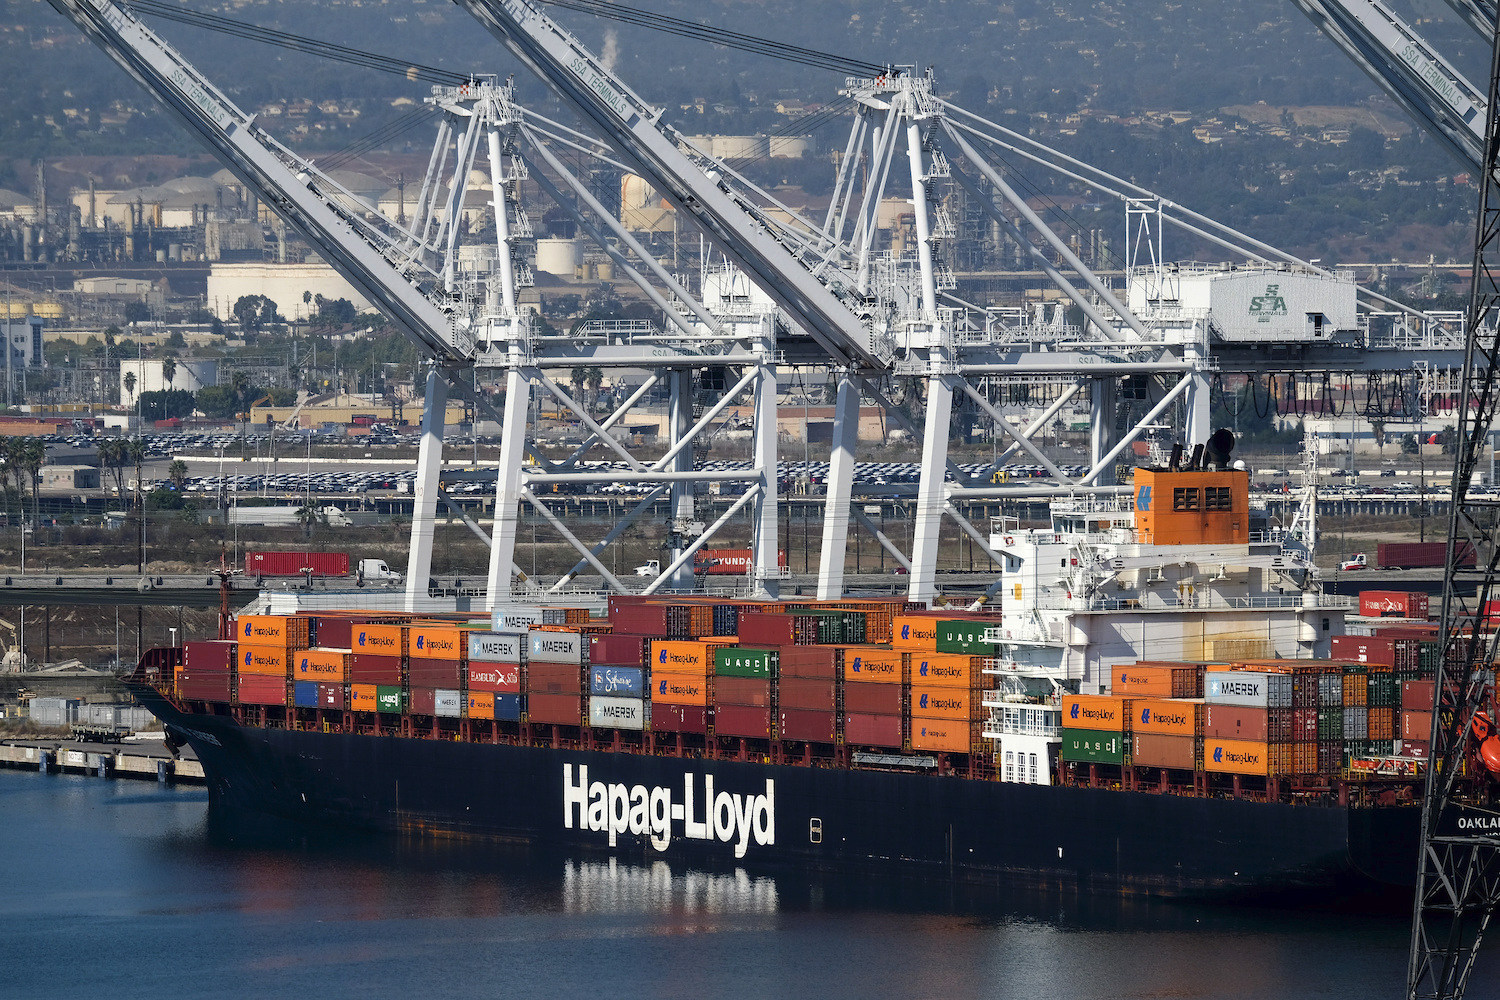 A Hapag-Lloyd container ship is seen docked at the Port of Long Beach, Calif., Friday, Oct. 2, 2020.